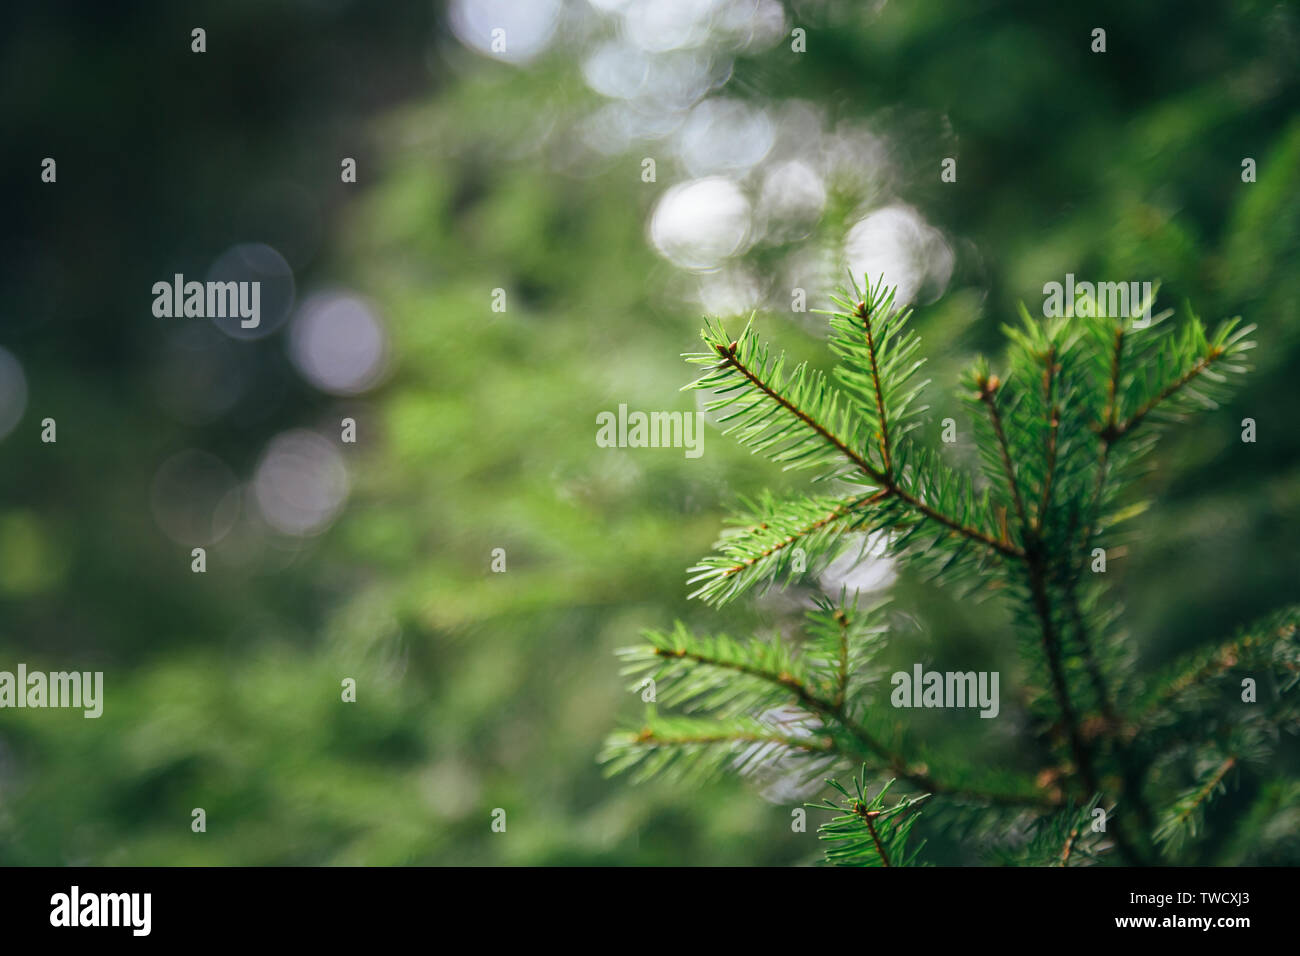 Close up of small young fir tree needles with forest at background. Spring blossom background. Image for agriculture, SPA, medical industries and dive Stock Photo